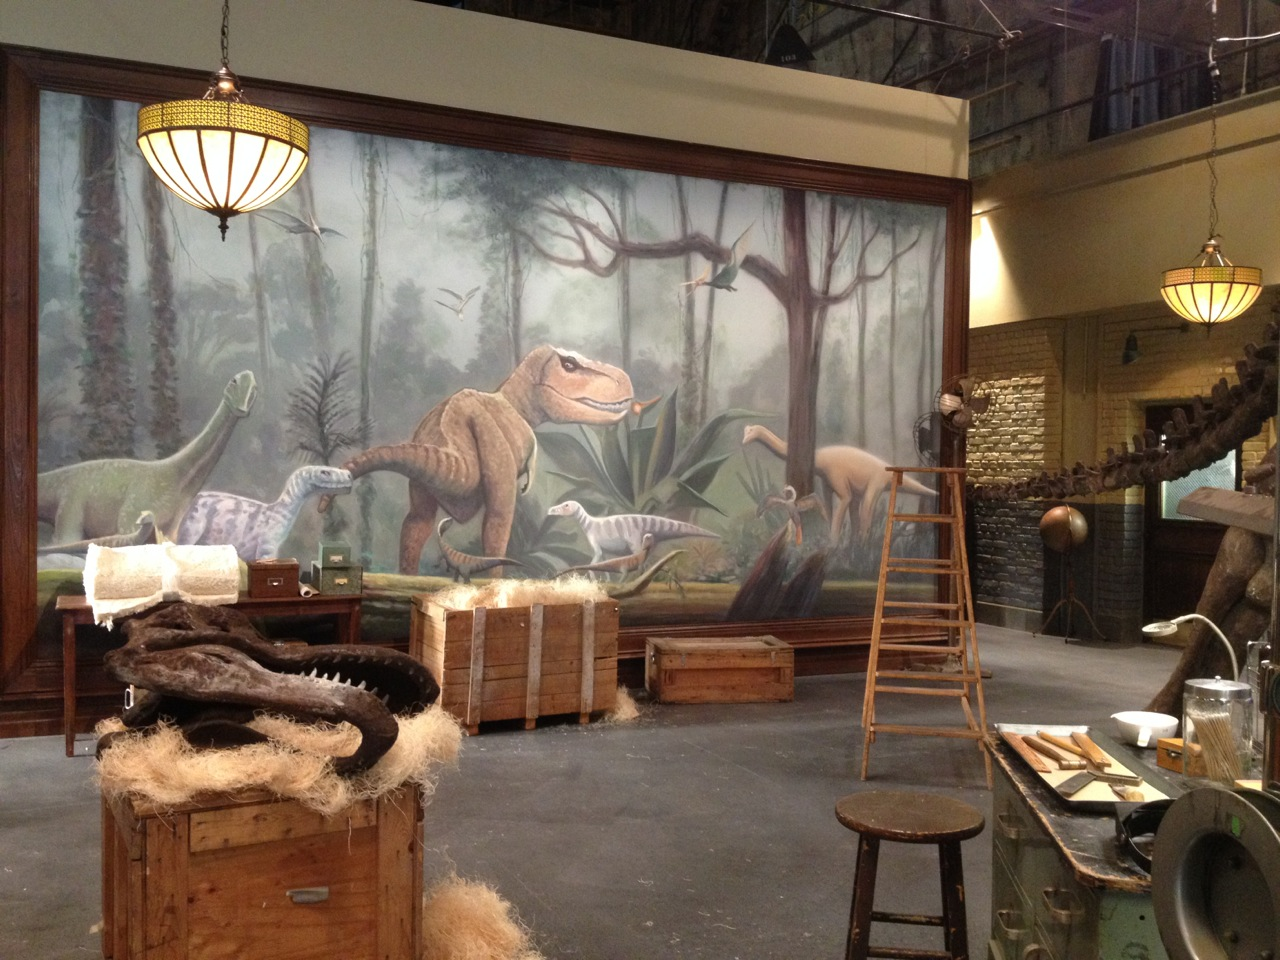 Hand painted mural on muslin installed on set